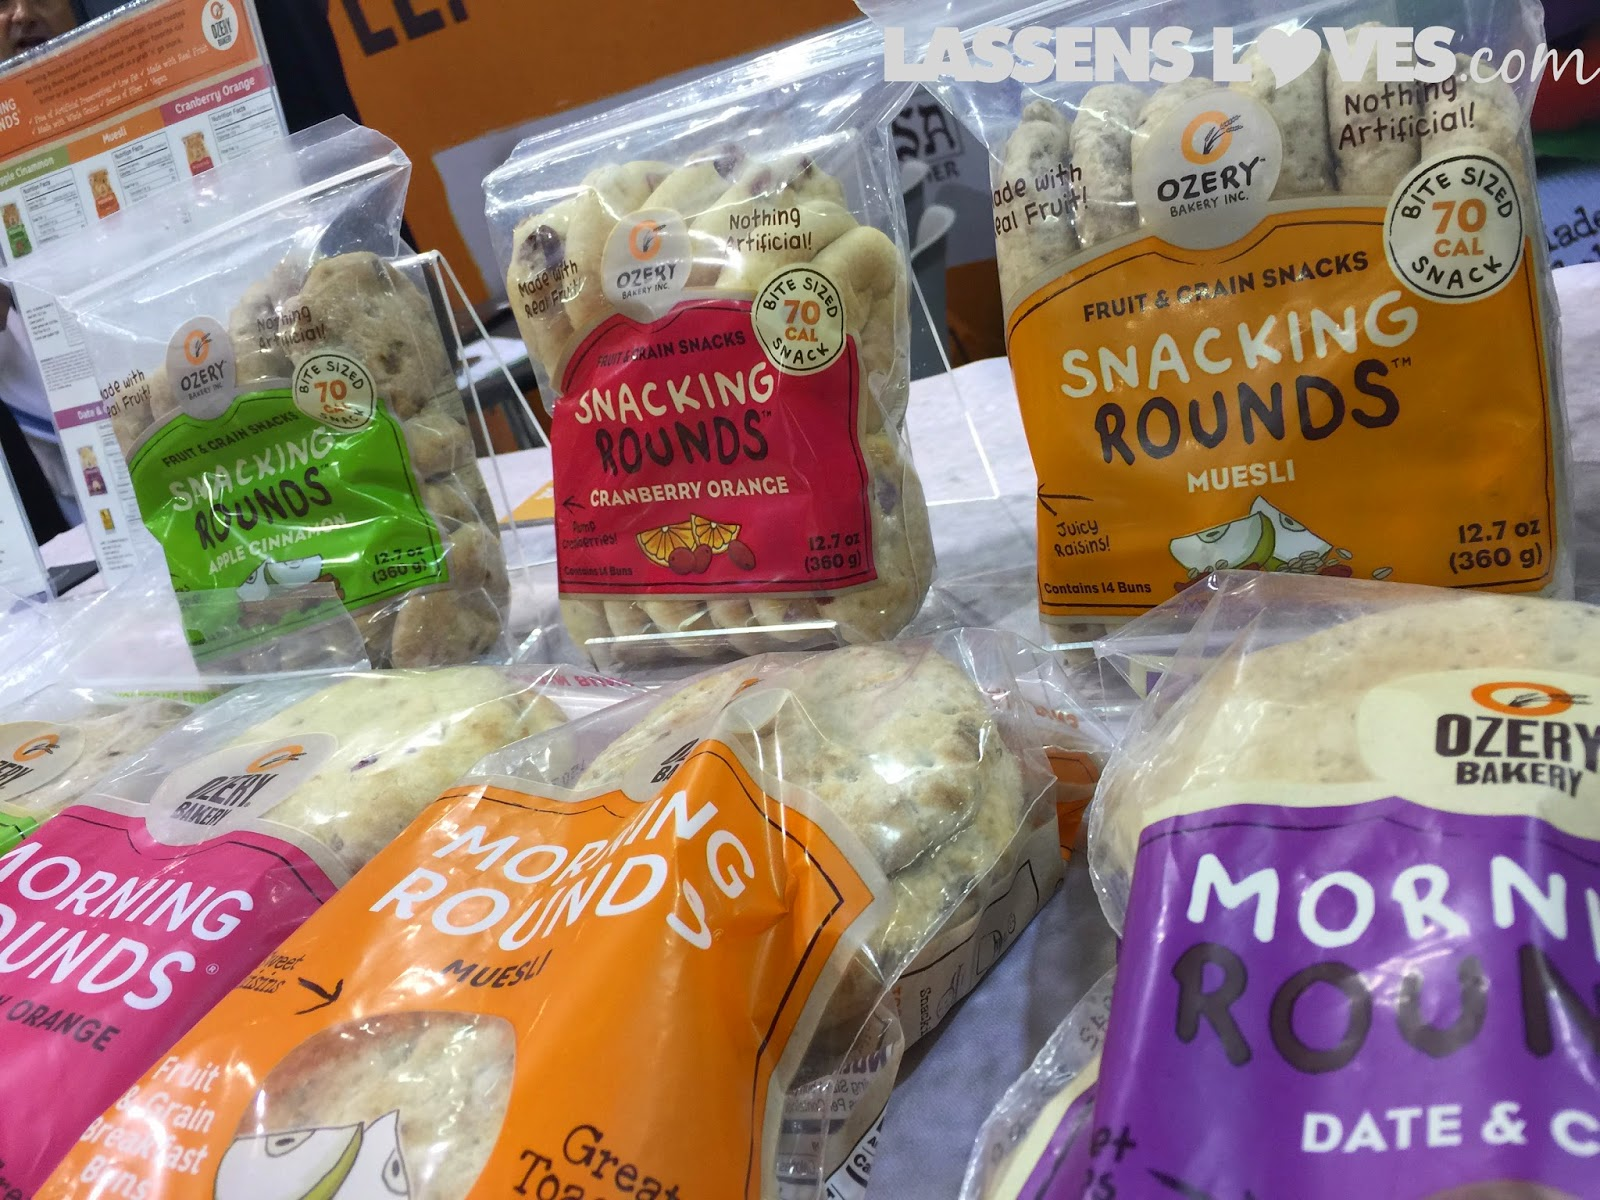 Expo+West+2015, Natural+Foods+Show, New+Natural+Products, ozery+bakery, snacking+rounds,